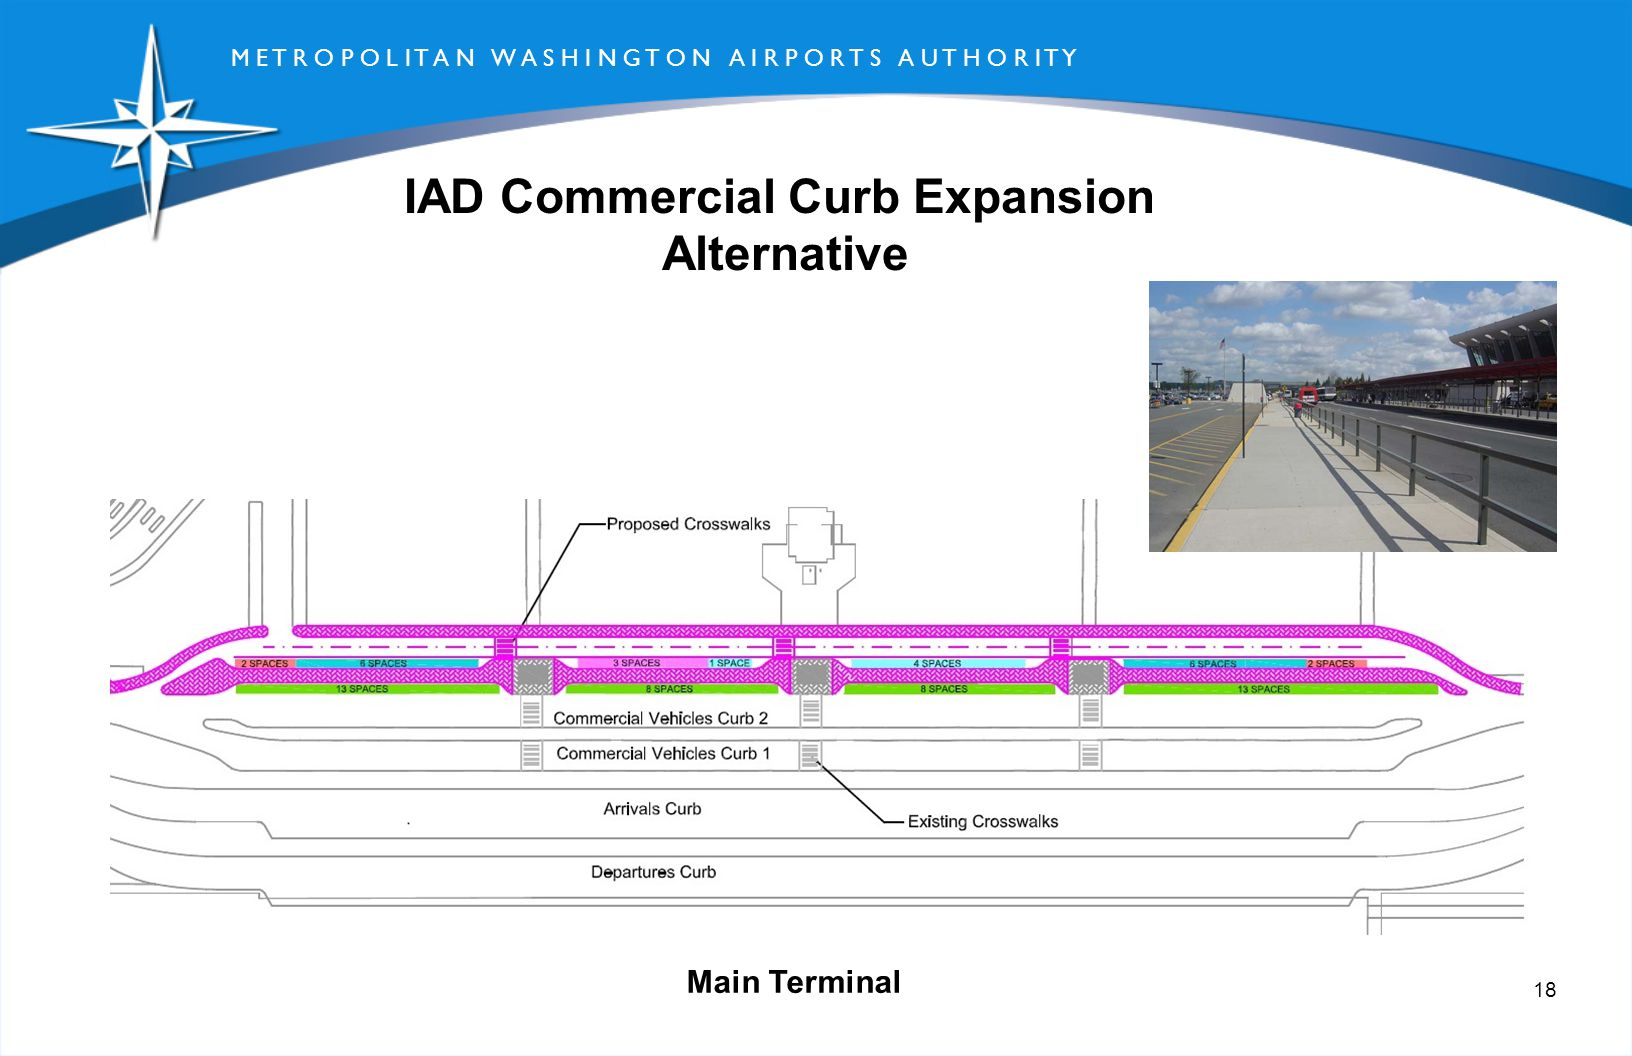 M E T R O P O L I T A N W A S H I N G T O N A I R P O R T S A U T H O R I T Y 18 Main Terminal IAD Commercial Curb Expansion Alternative